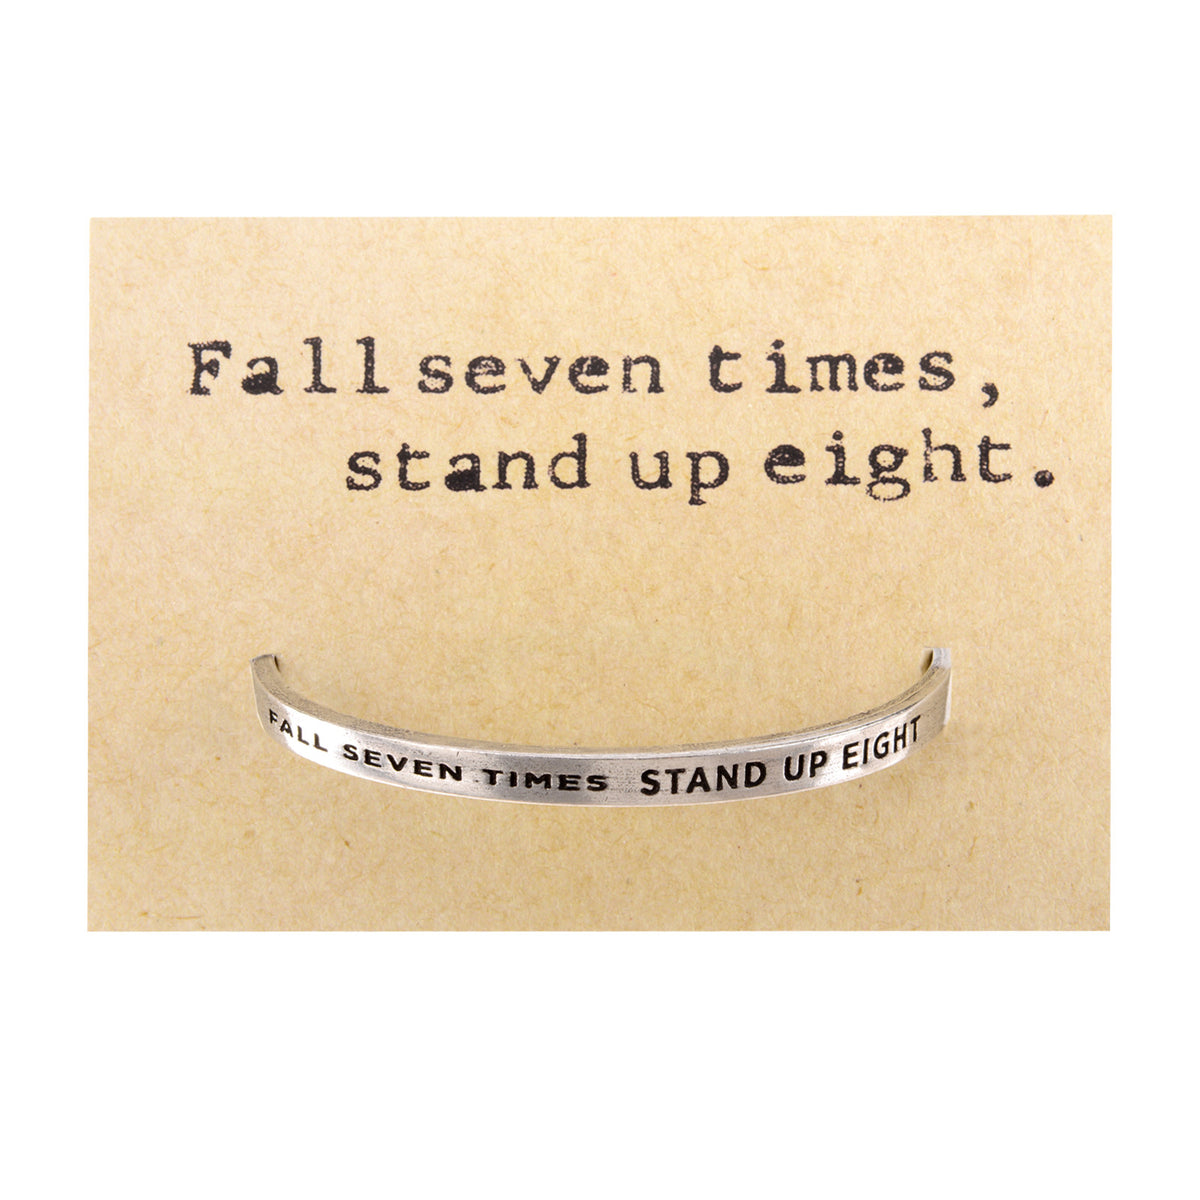 Fall 7 Times, Stand Up 8 Quotable Cuff - Whitney Howard Designs